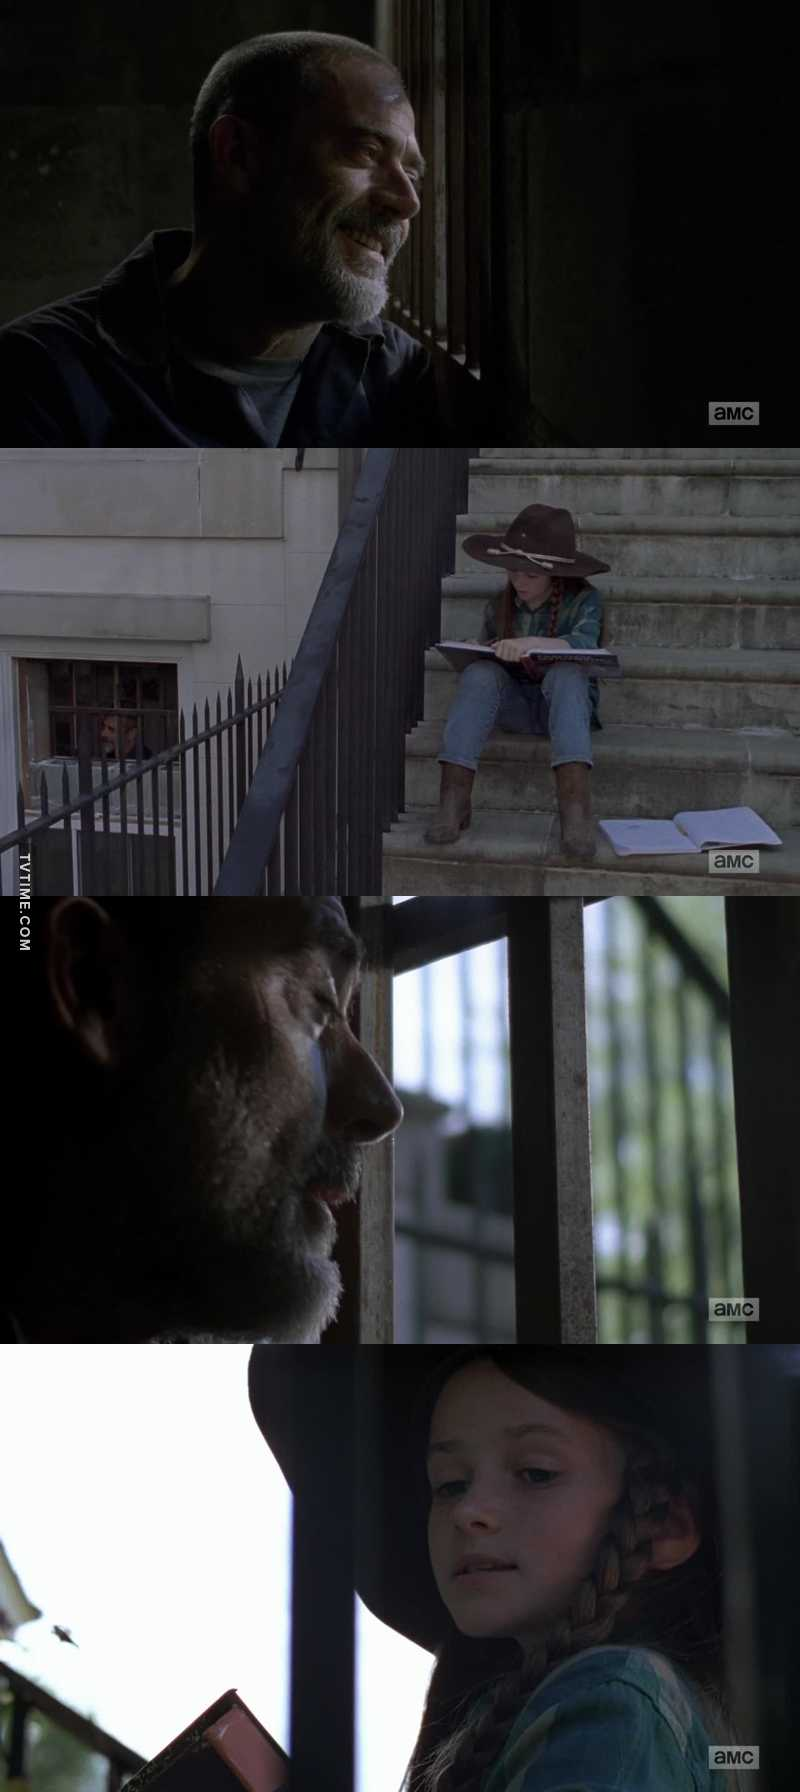 Negan: wait a minute where you going ? I thought you wanted my help  Judith : i do, but just for math  Negan: why just math ?  Judith : because it's doesn't matter if you're a good or bad person on the inside. The numbers don't care.     HAHHA i laught so hard  This is JUDITH FUCKING BADASS GRIMES   I want more !